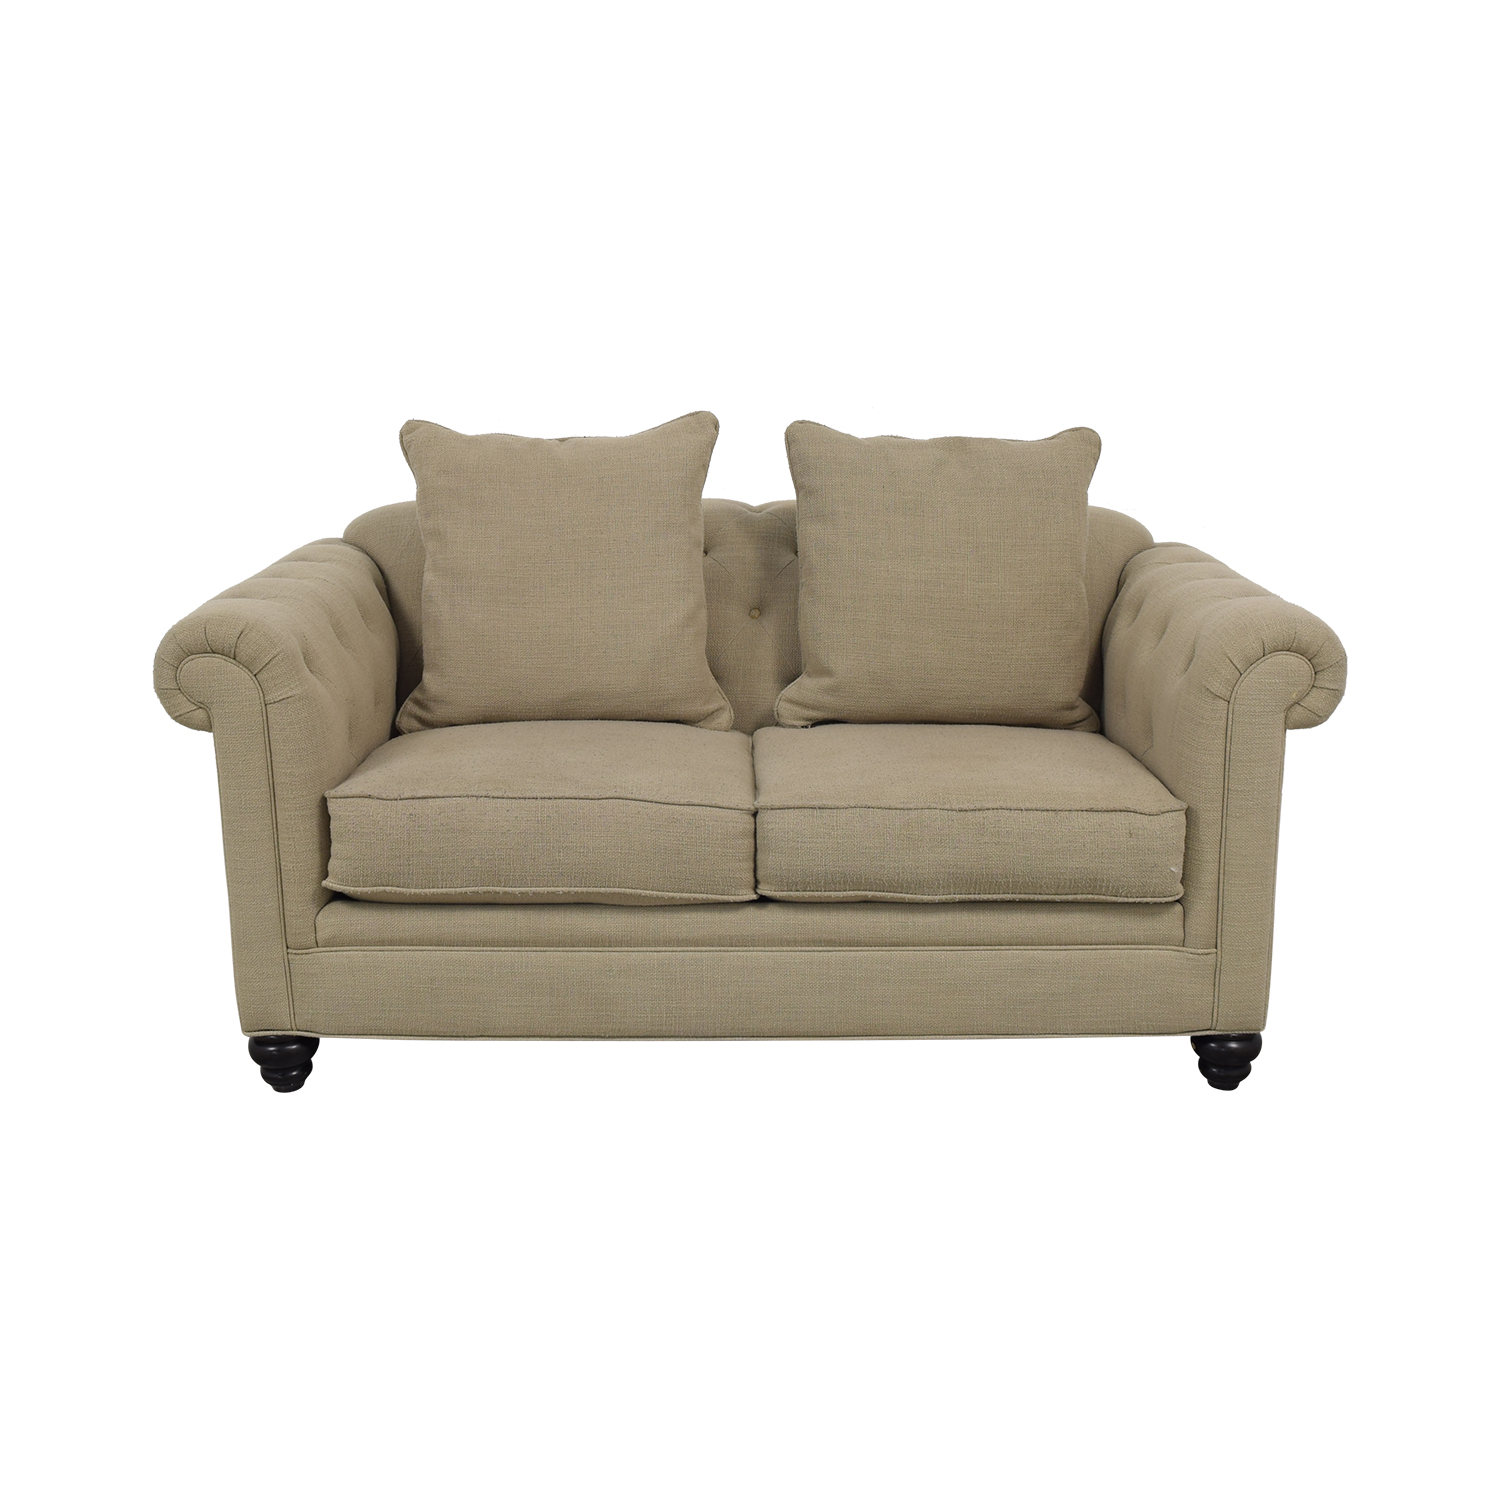 buy Jonathan Louis Cambridge Loveseat Jonathan Louis Loveseats